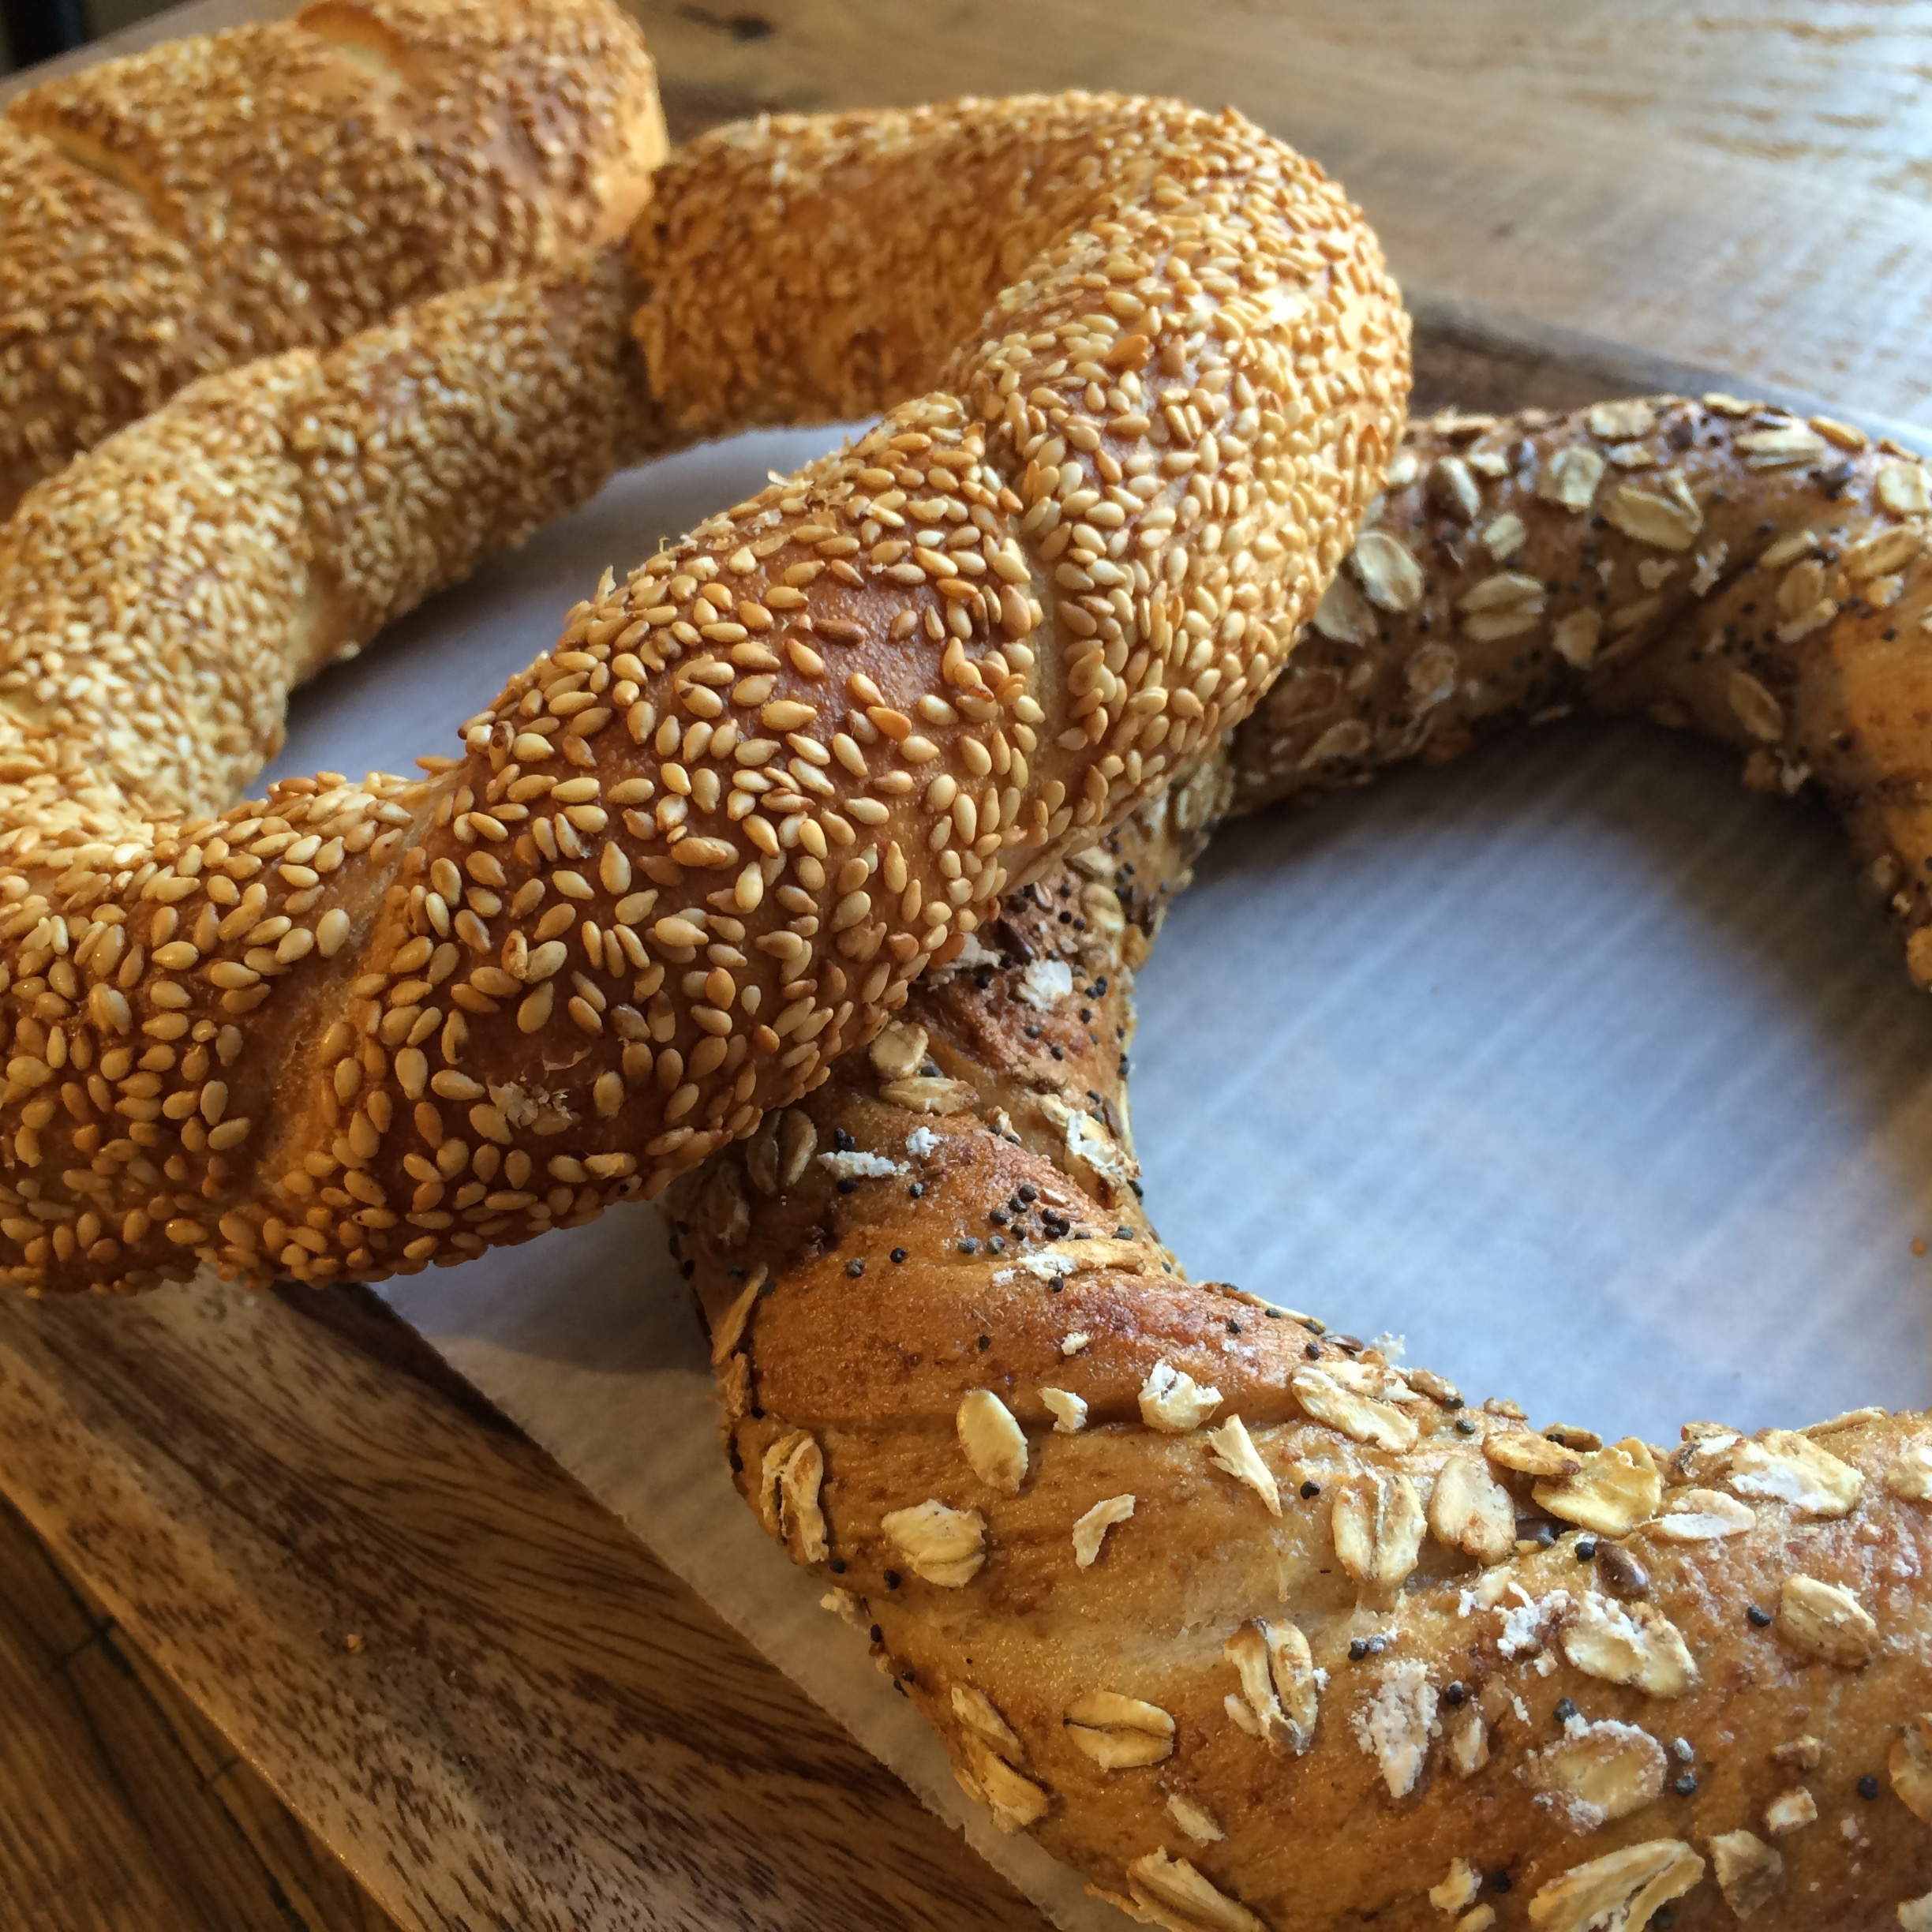 DC's next bagel? The simit lands in Washington